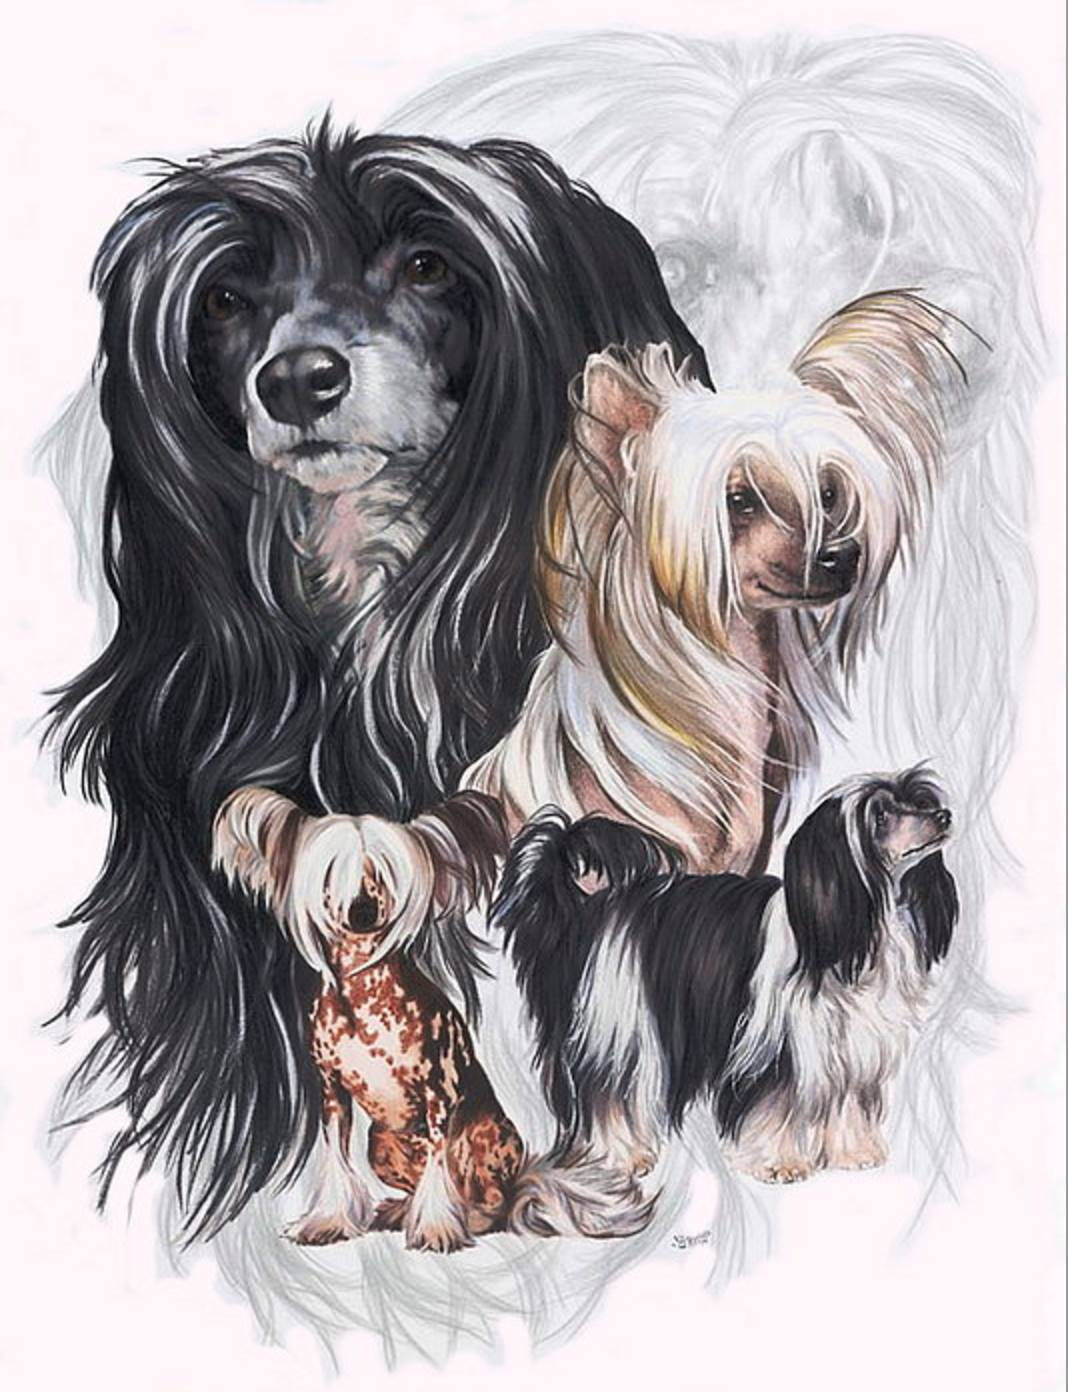 chinese crested hairless, dogs, purebred dogs,